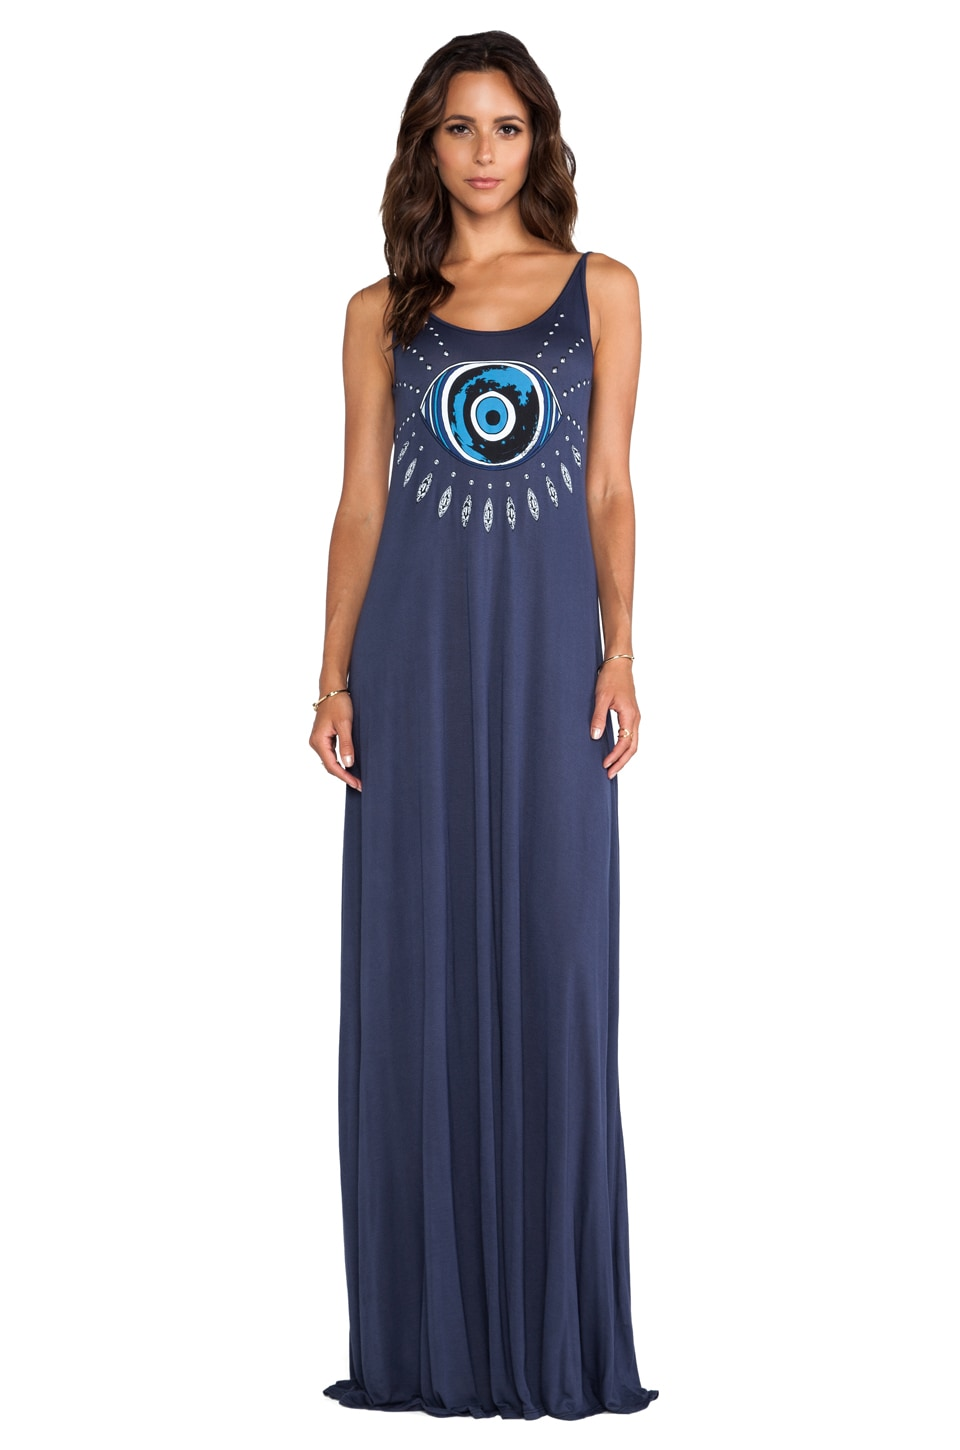 Lauren Moshi Lex Evil Eye Deep Back Maxi Dress in Navy